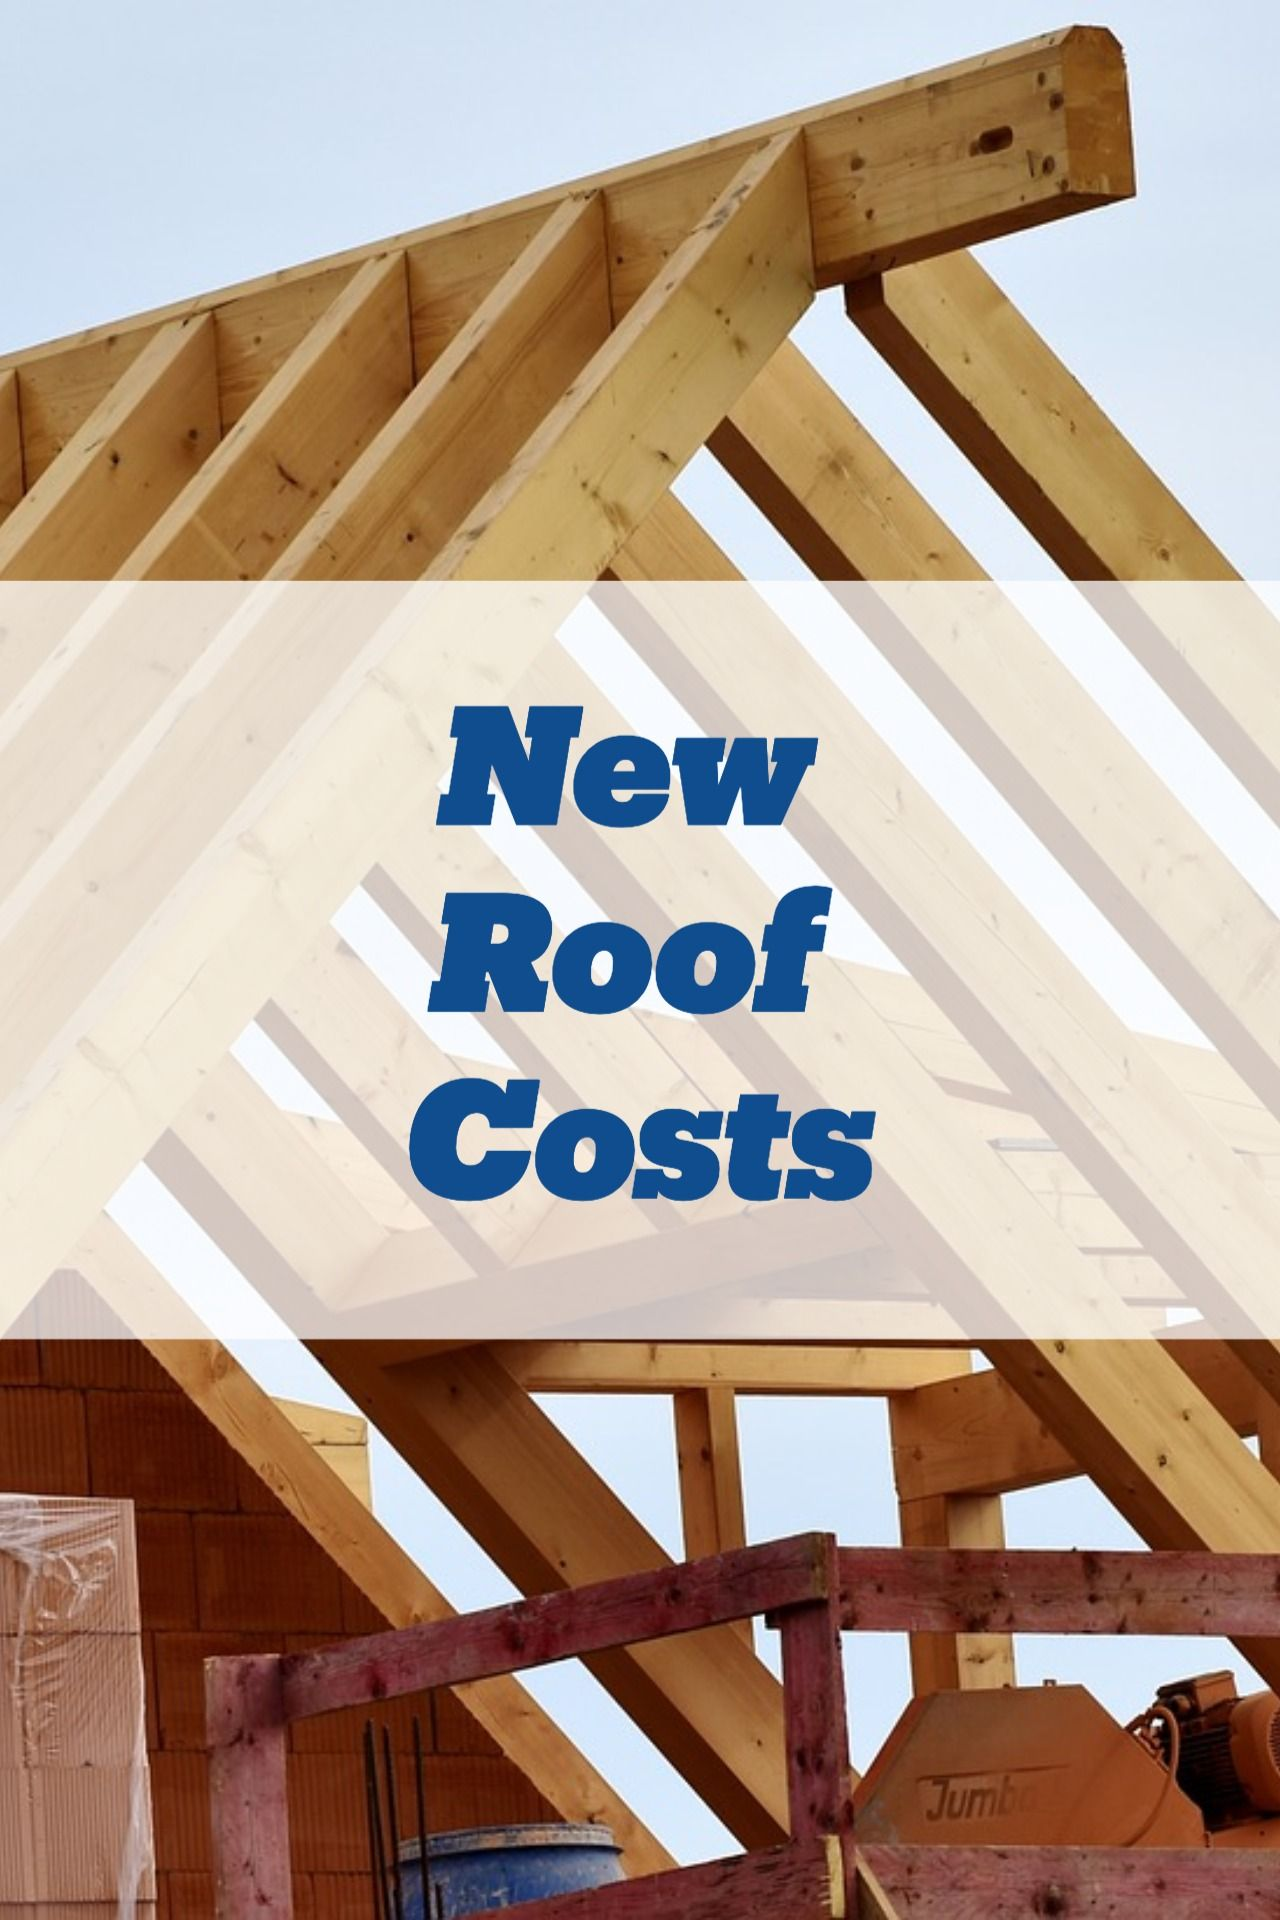 New Roof Costs Roof Cost Roof Roofing